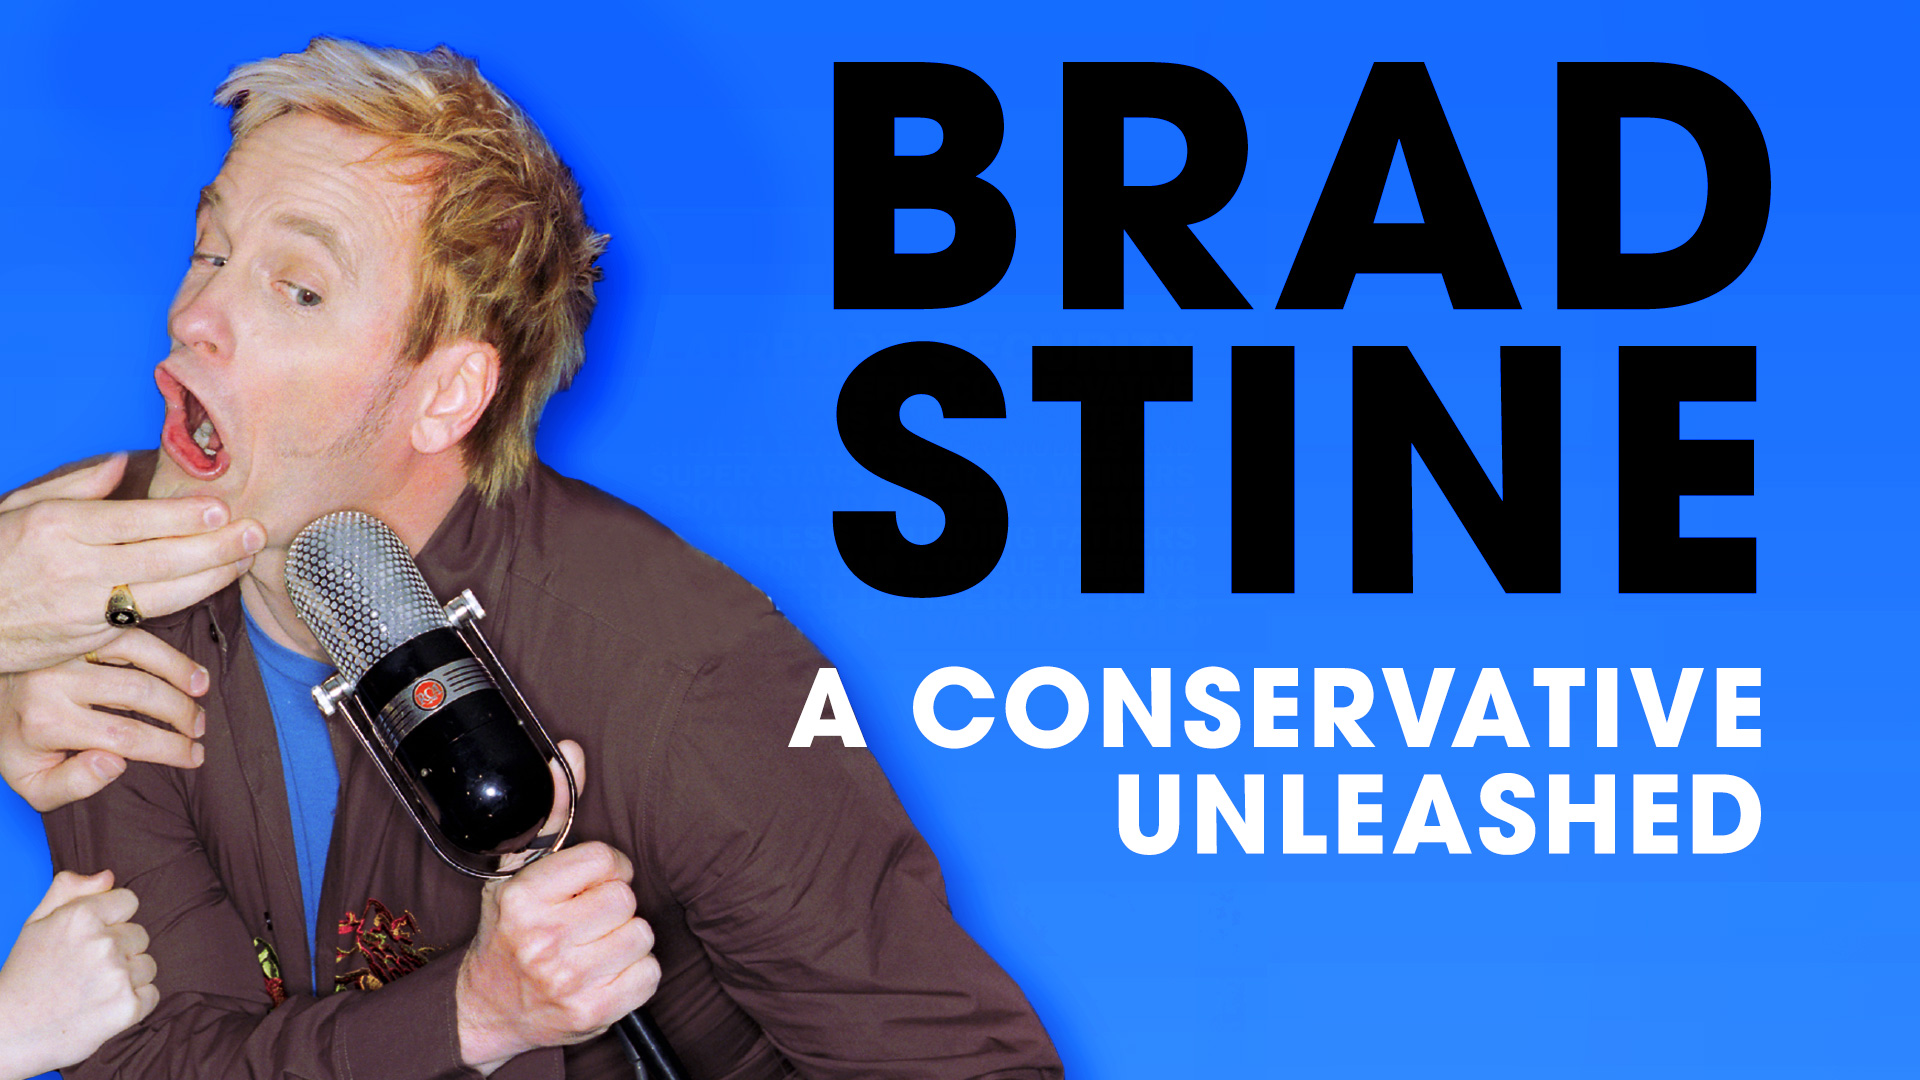 Brad Stine: A Conservative Unleashed